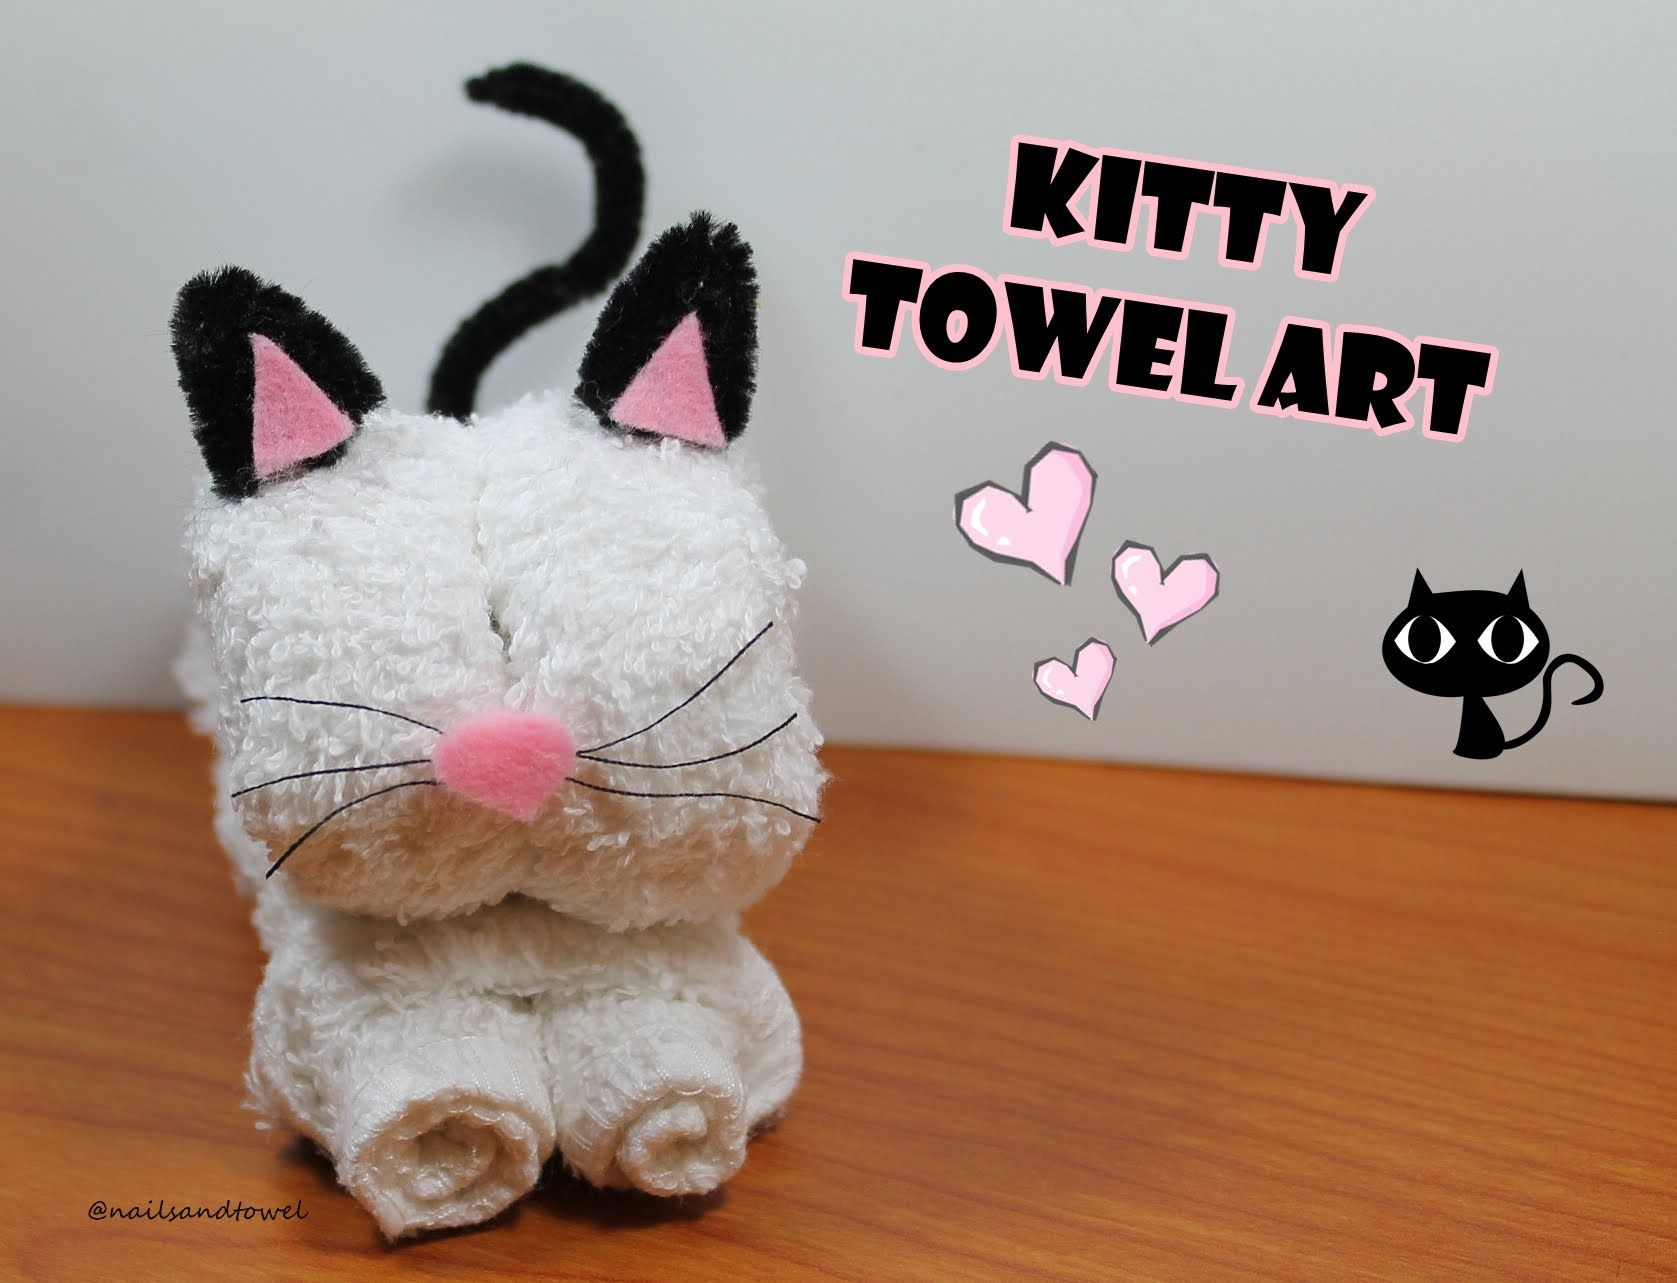 Piegare Gli Asciugamani A Forma Di Animale : How to make a kitty towel art video tutorial como hacer un